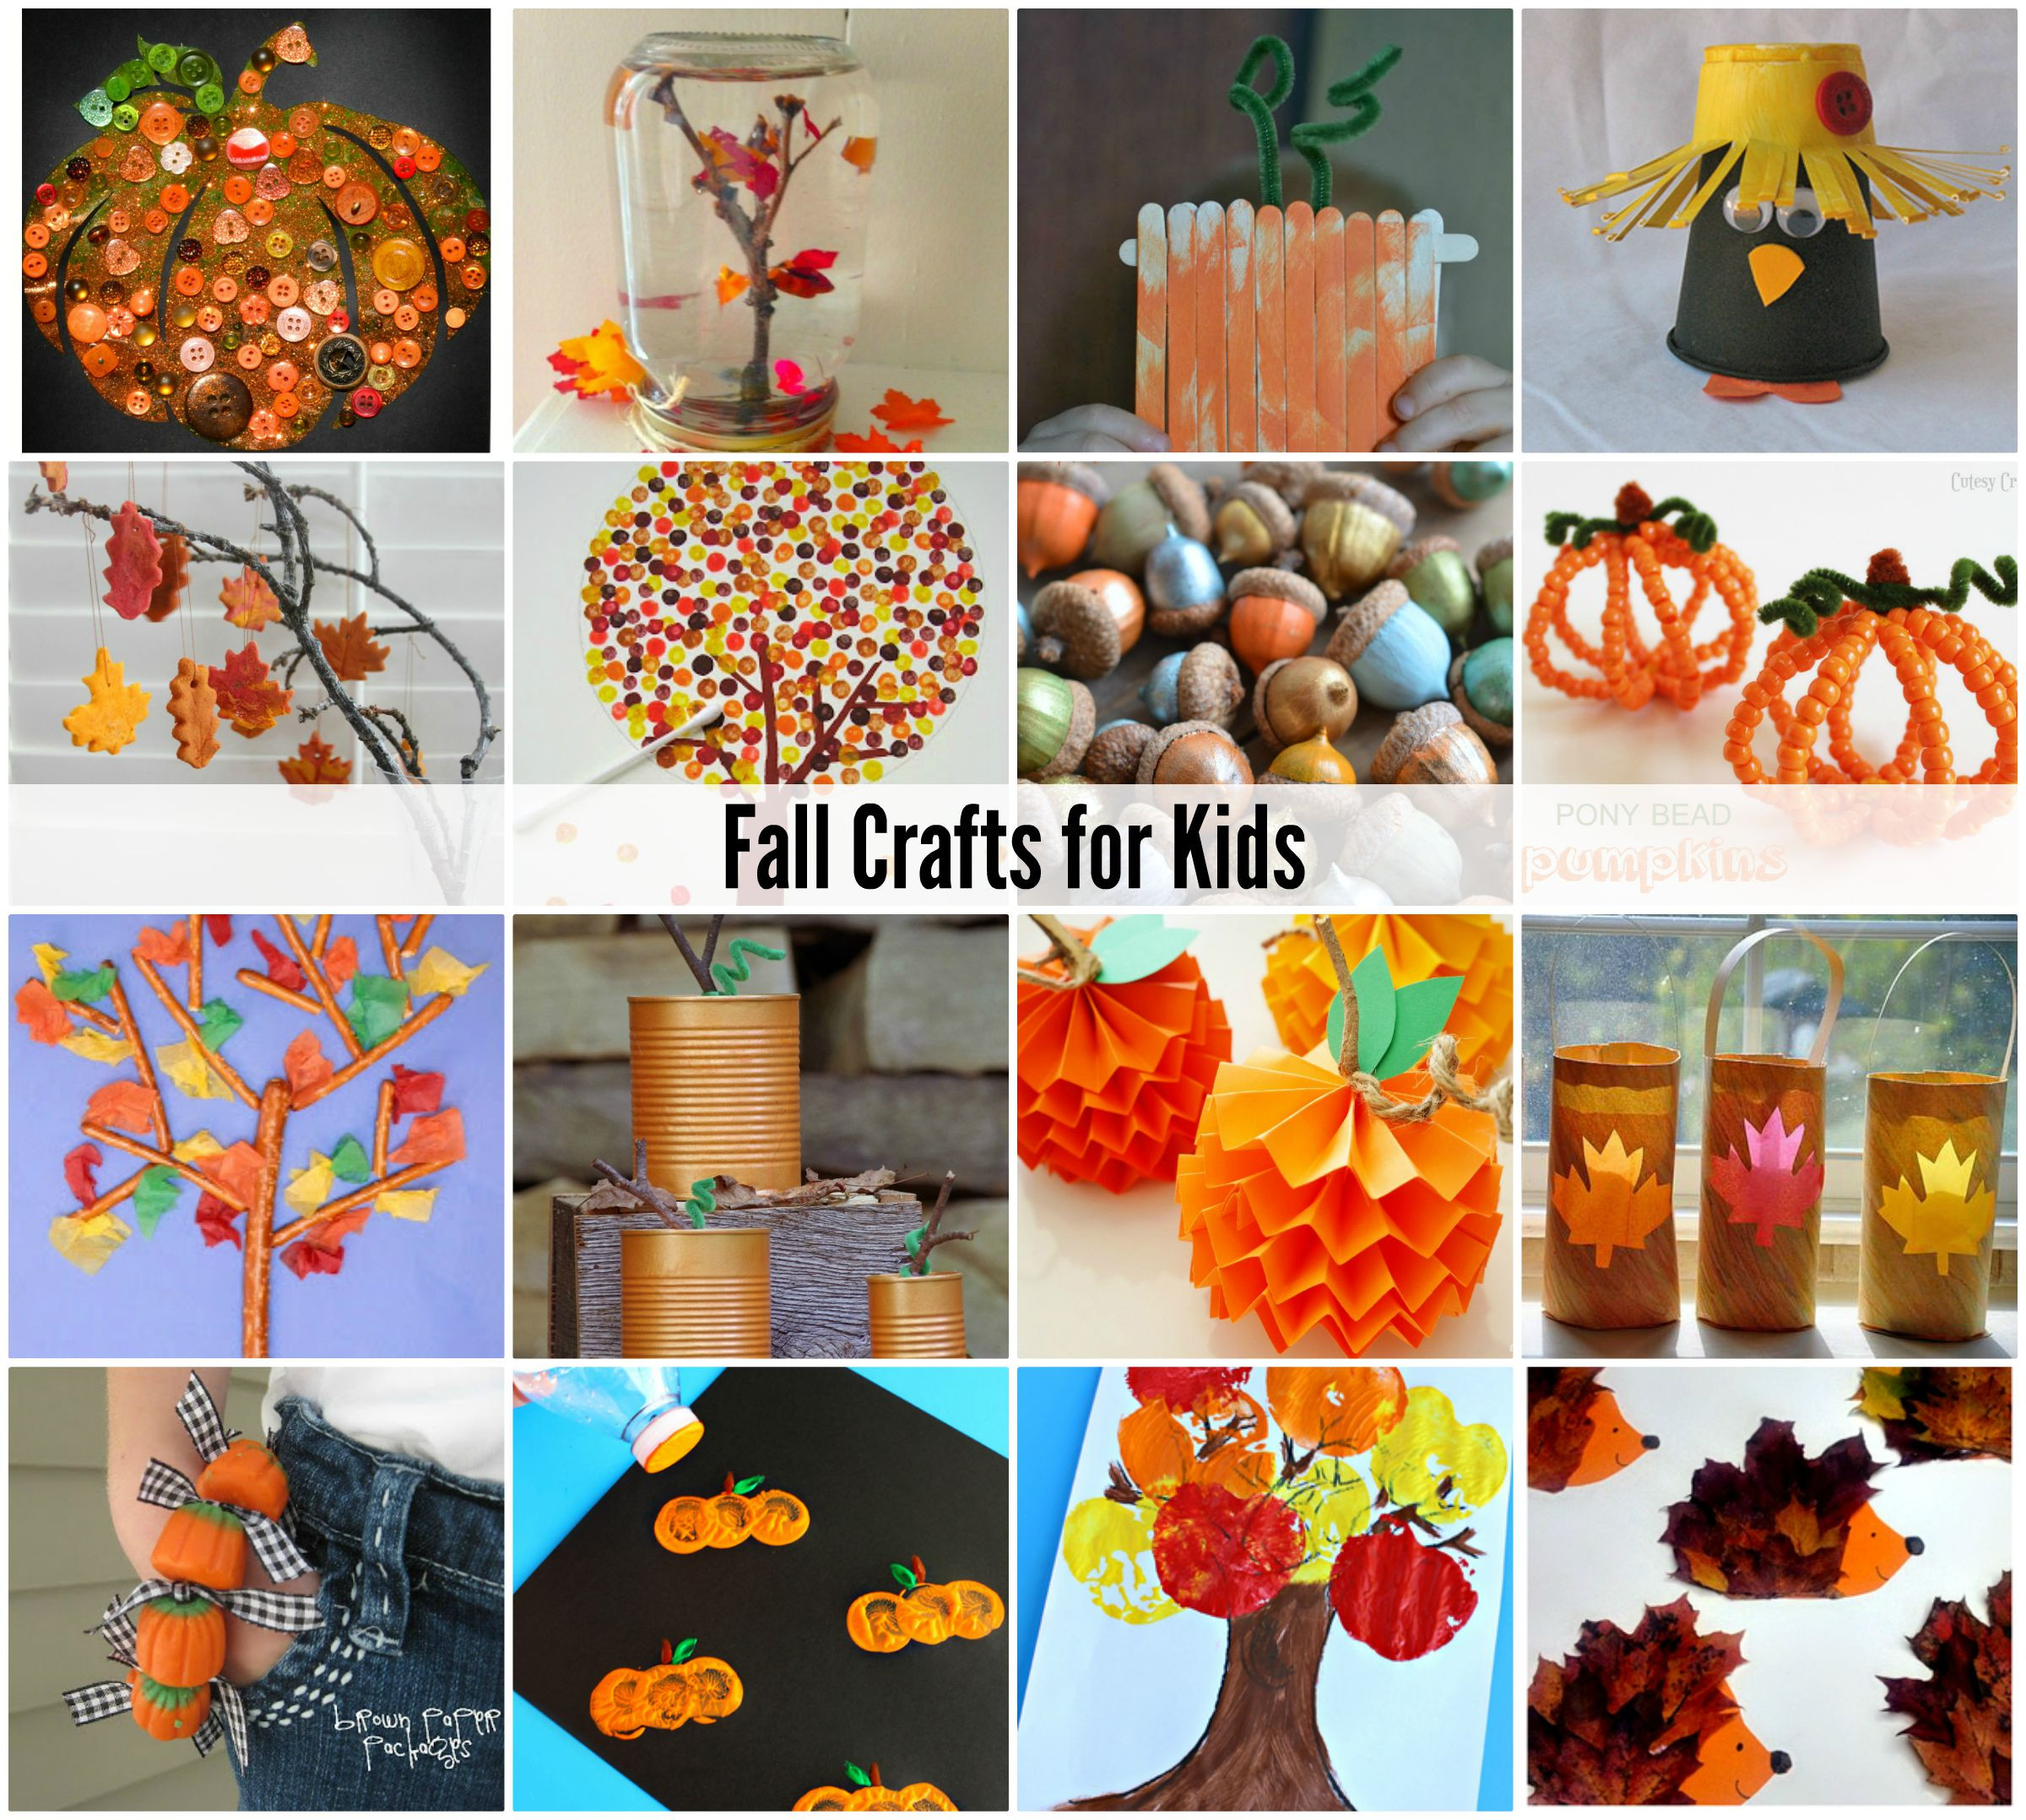 Fall Toddler Craft Ideas  Fall Crafts for Kids The Idea Room